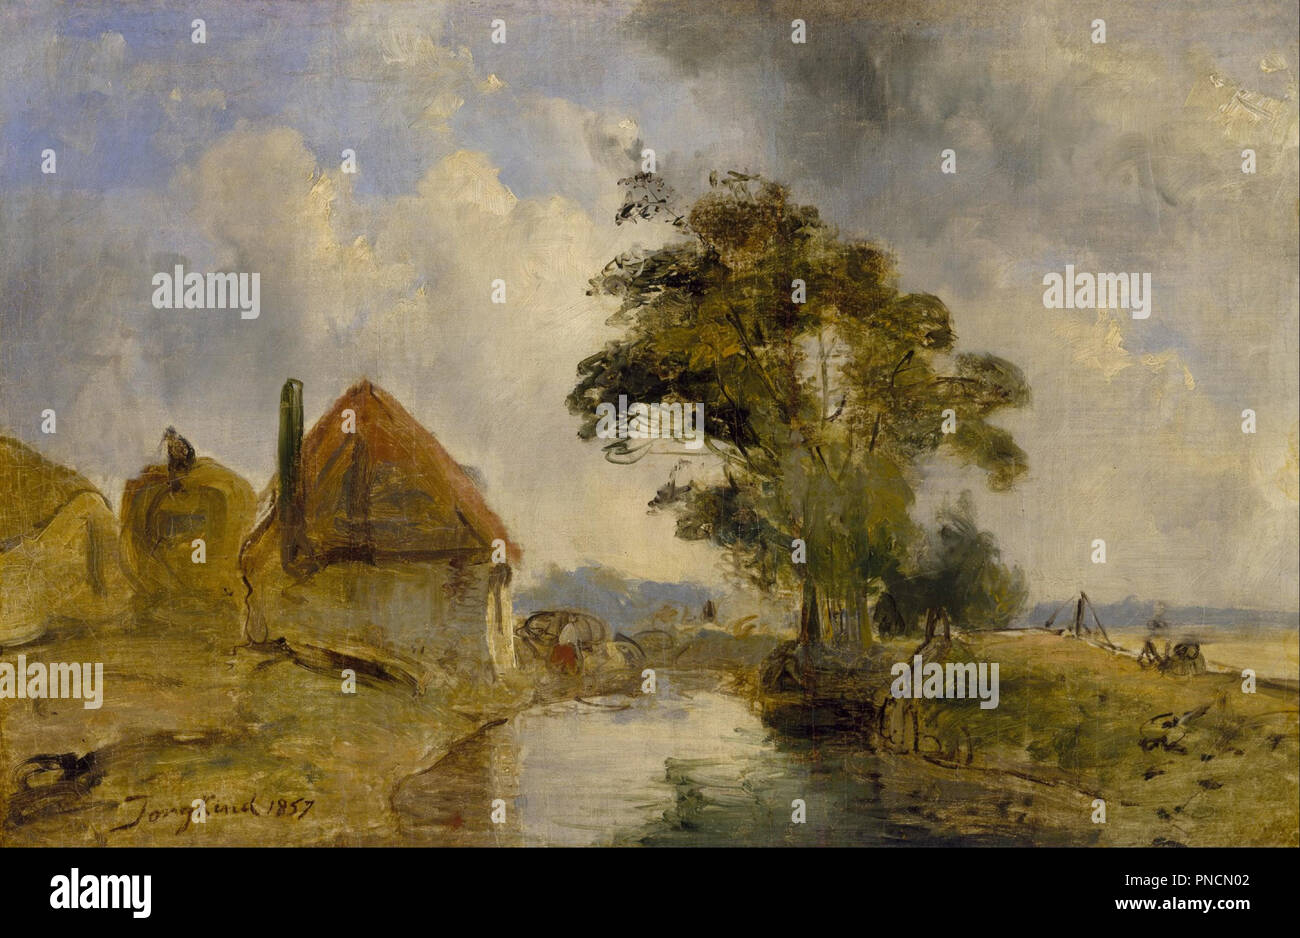 Cm Breda Environs Of Breda Date Period 1857 Painting Oil On Canvas